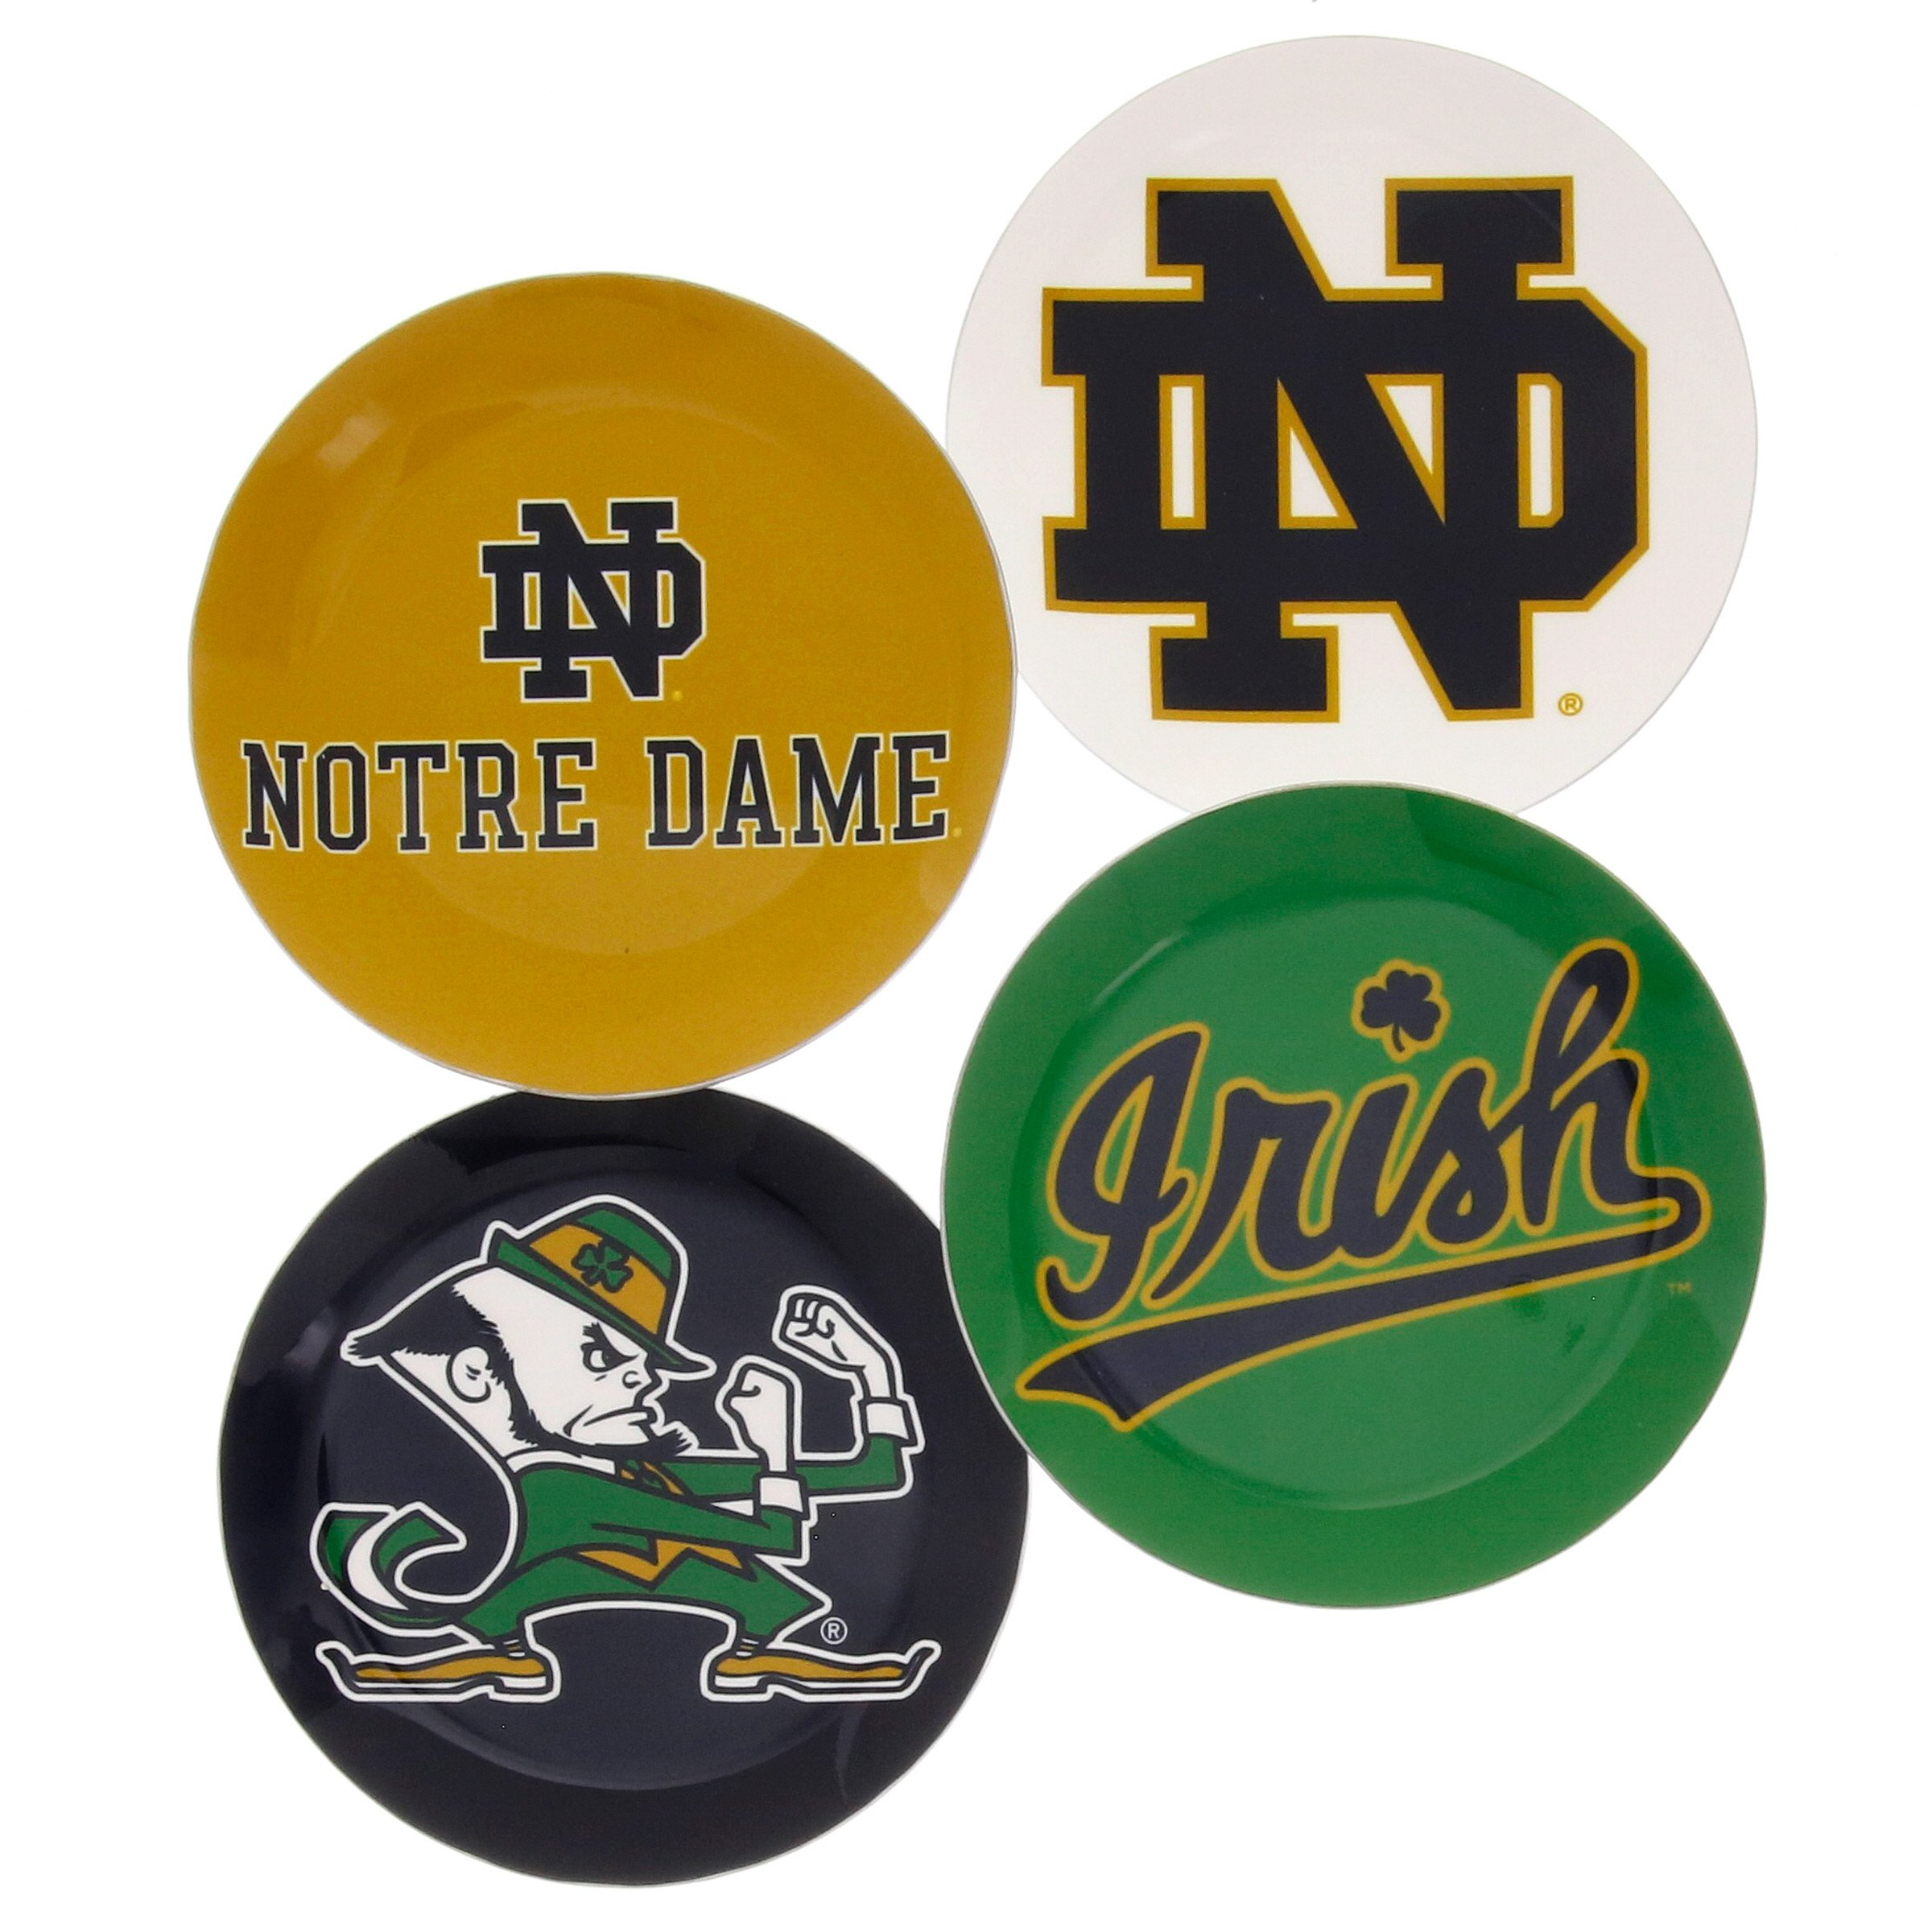 College and University Coaster Set, 4 Coasters Included, Made of Light Weight Aluminum by Wendell August (Notre Dame University, 4 Coasters)